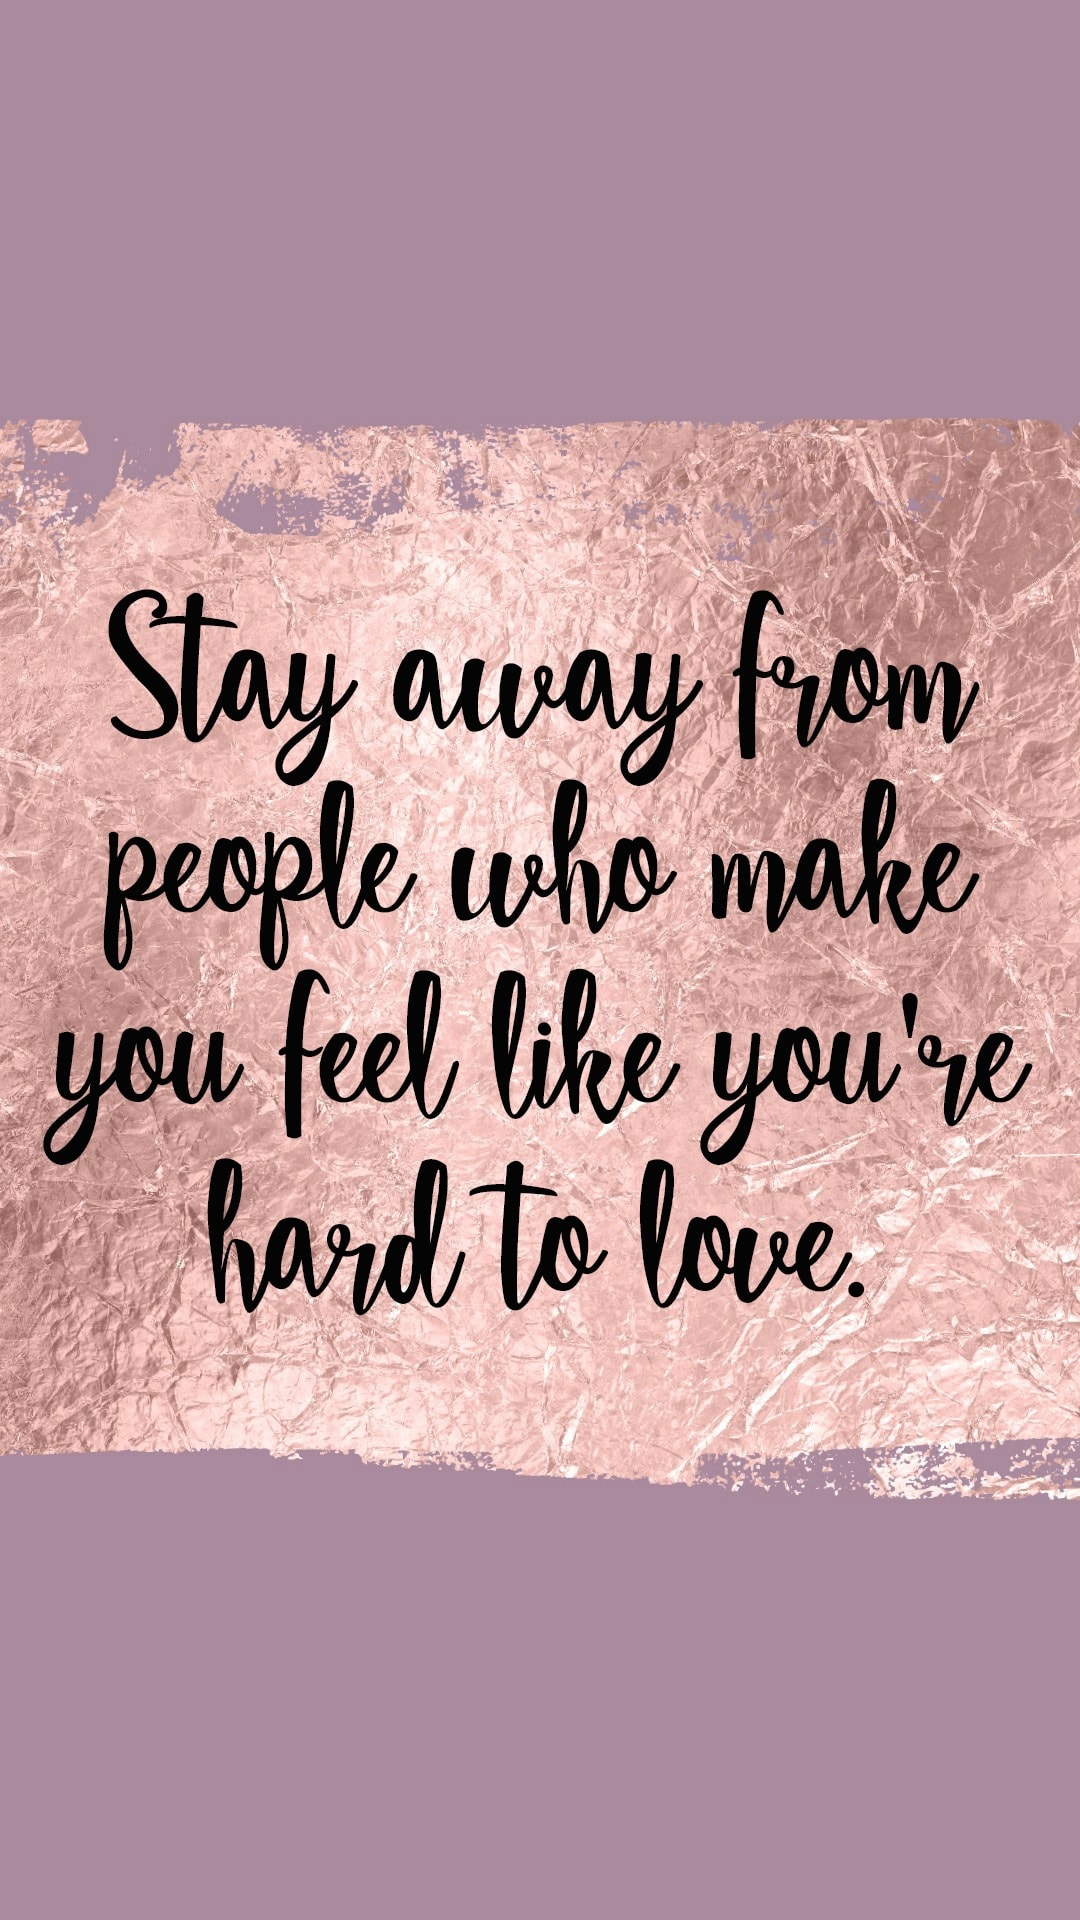 Stay away from people who make you feel like you're hard to love.